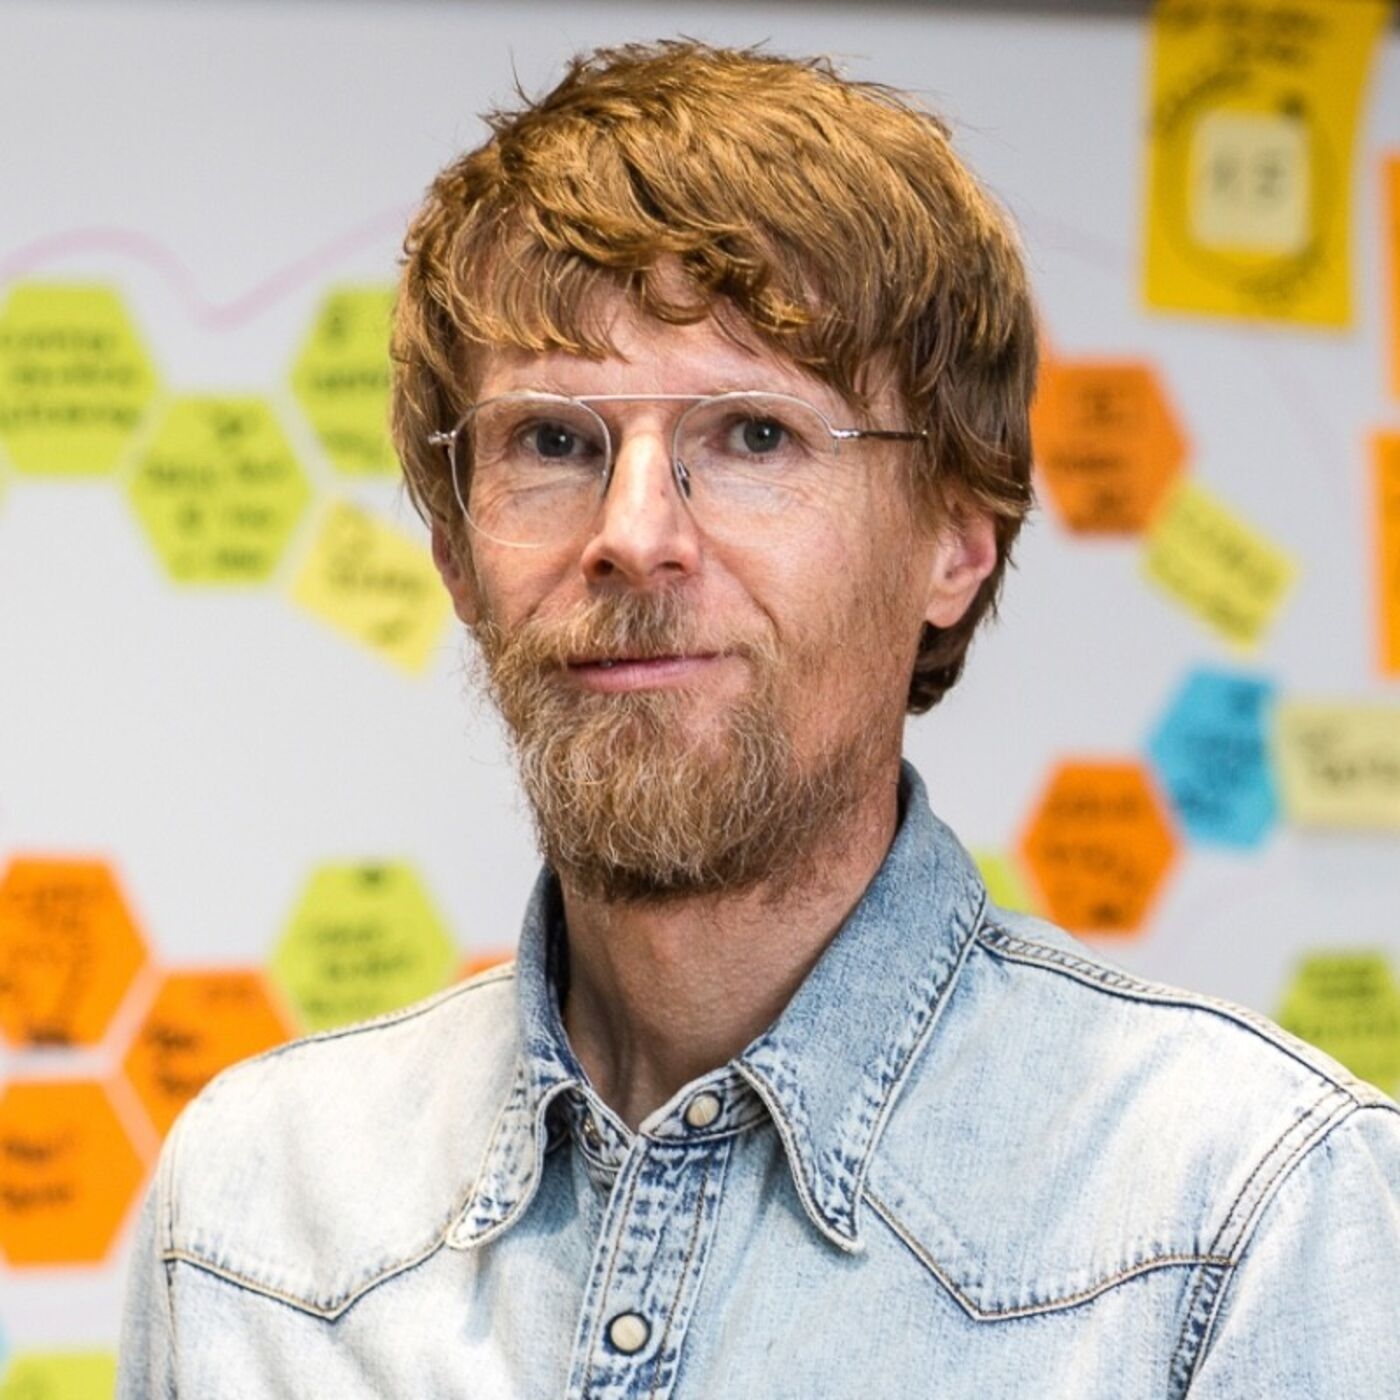 EU Tour #29 Nurturing a product learning network in disruptive times with Stefan Haas